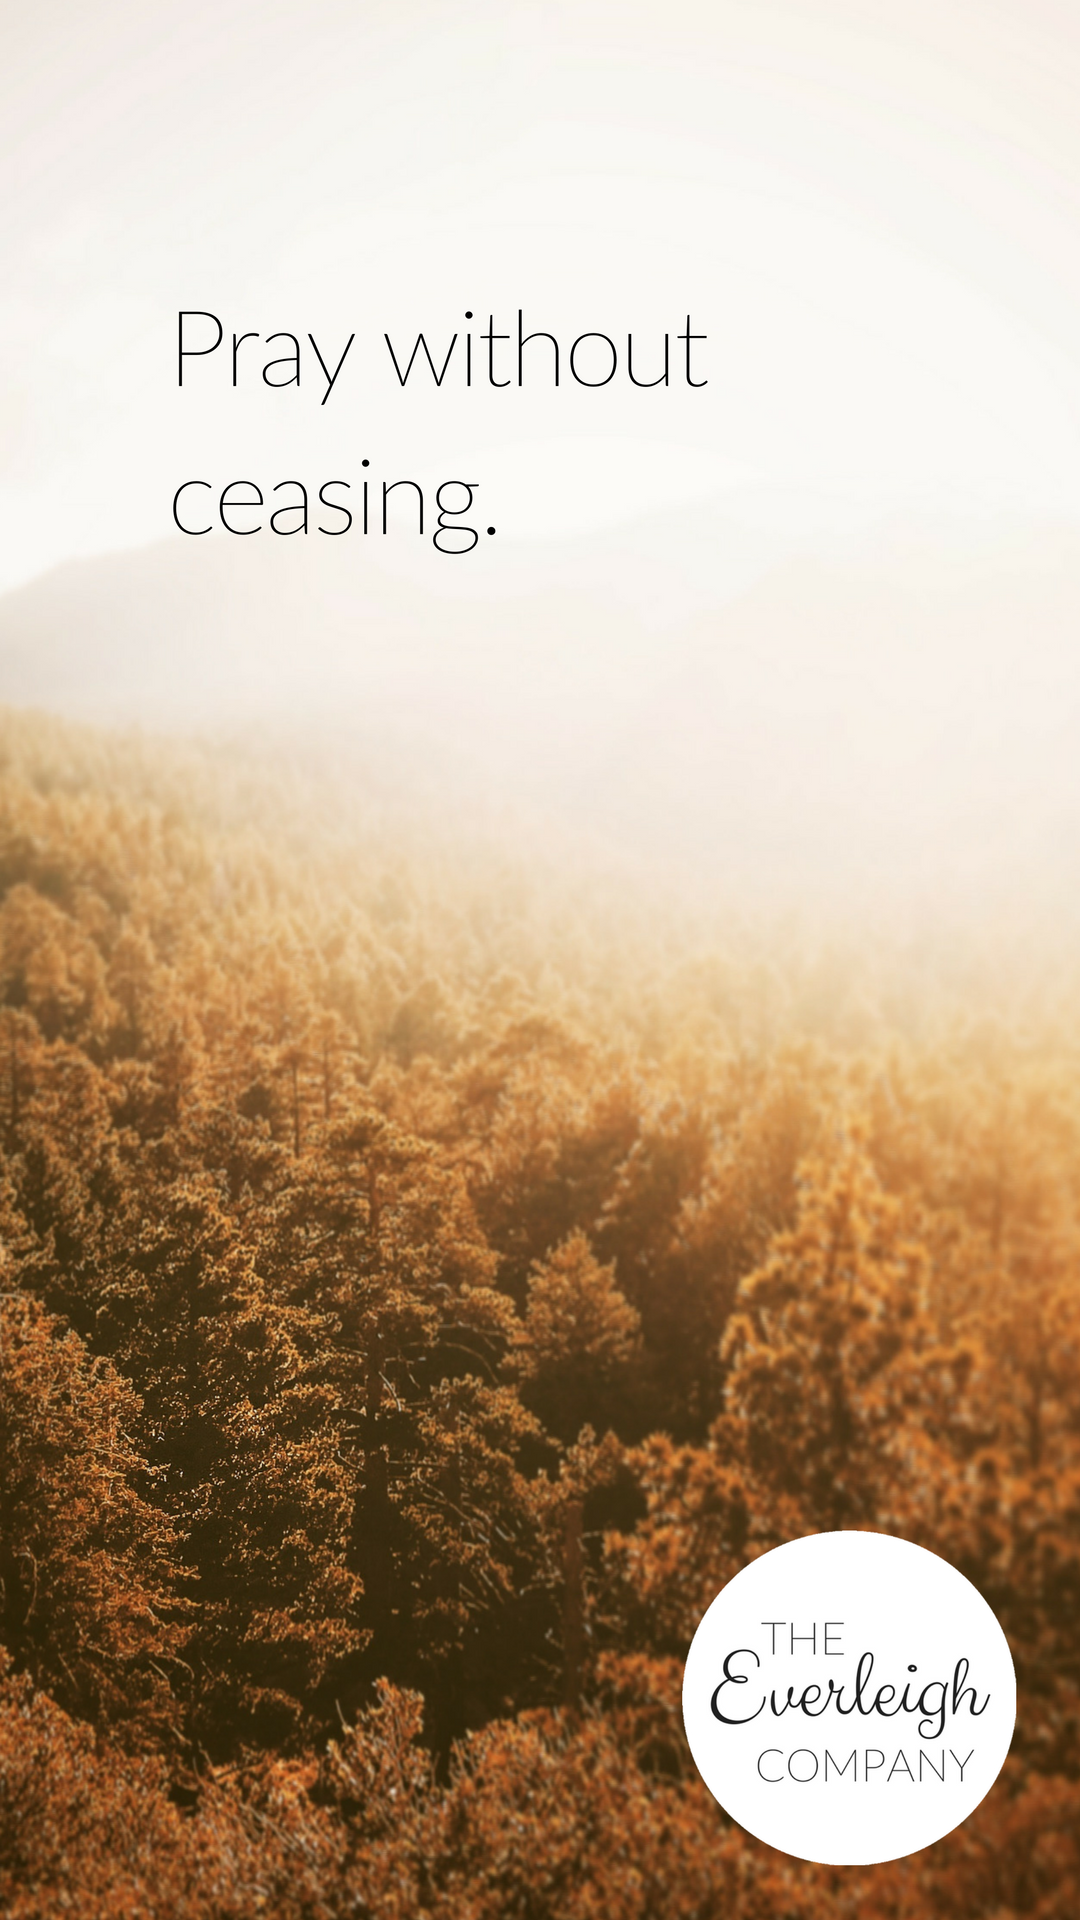 Everleigh Company iPhone Wallpaper Pray Without Ceasing